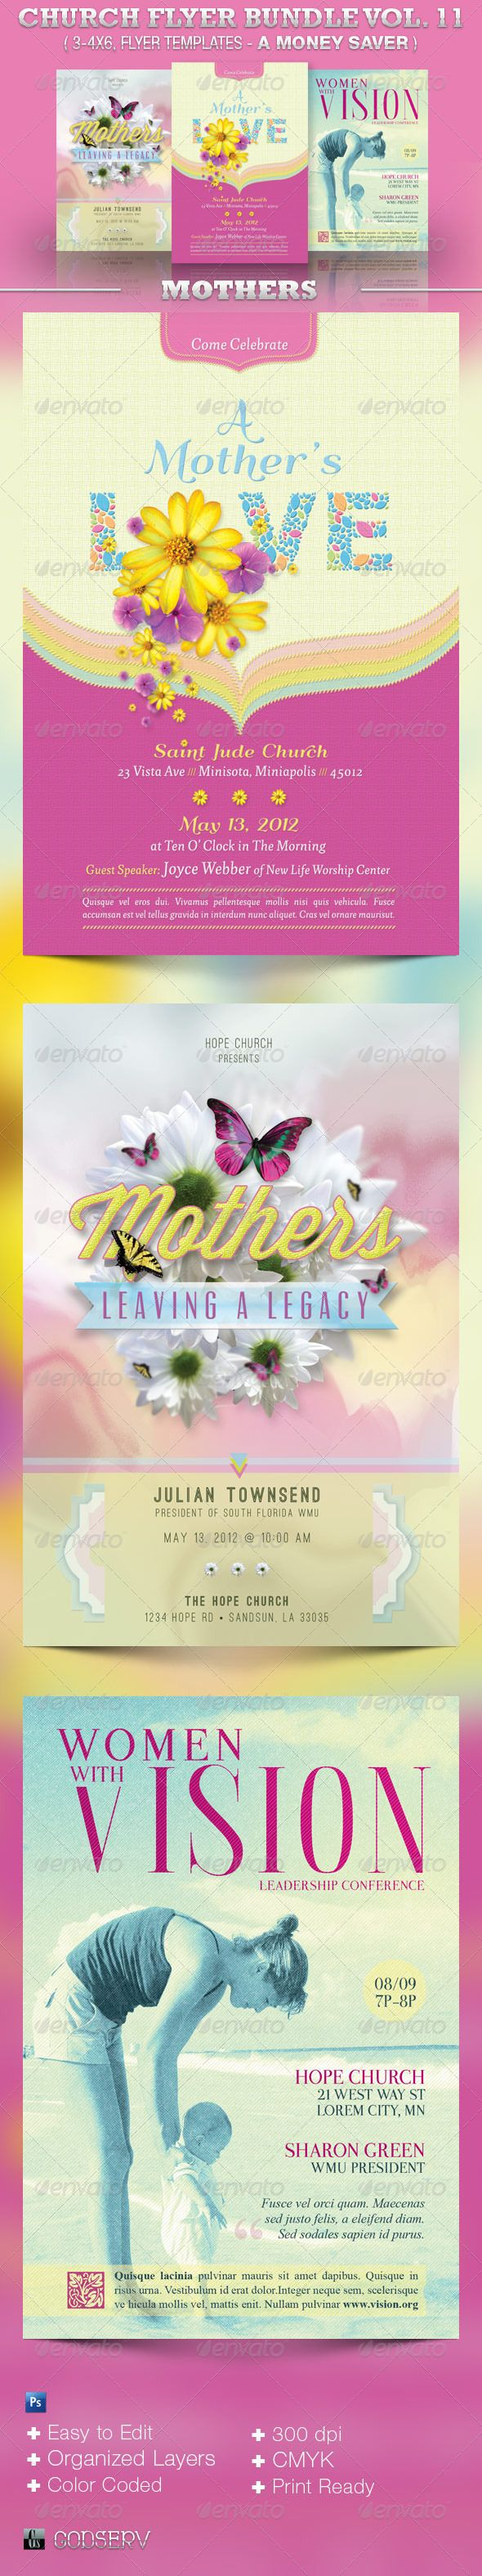 1000 images about print templates fonts flyer church flyer template bundle volume 11 mothers graphicriver the church flyer template bundle vol